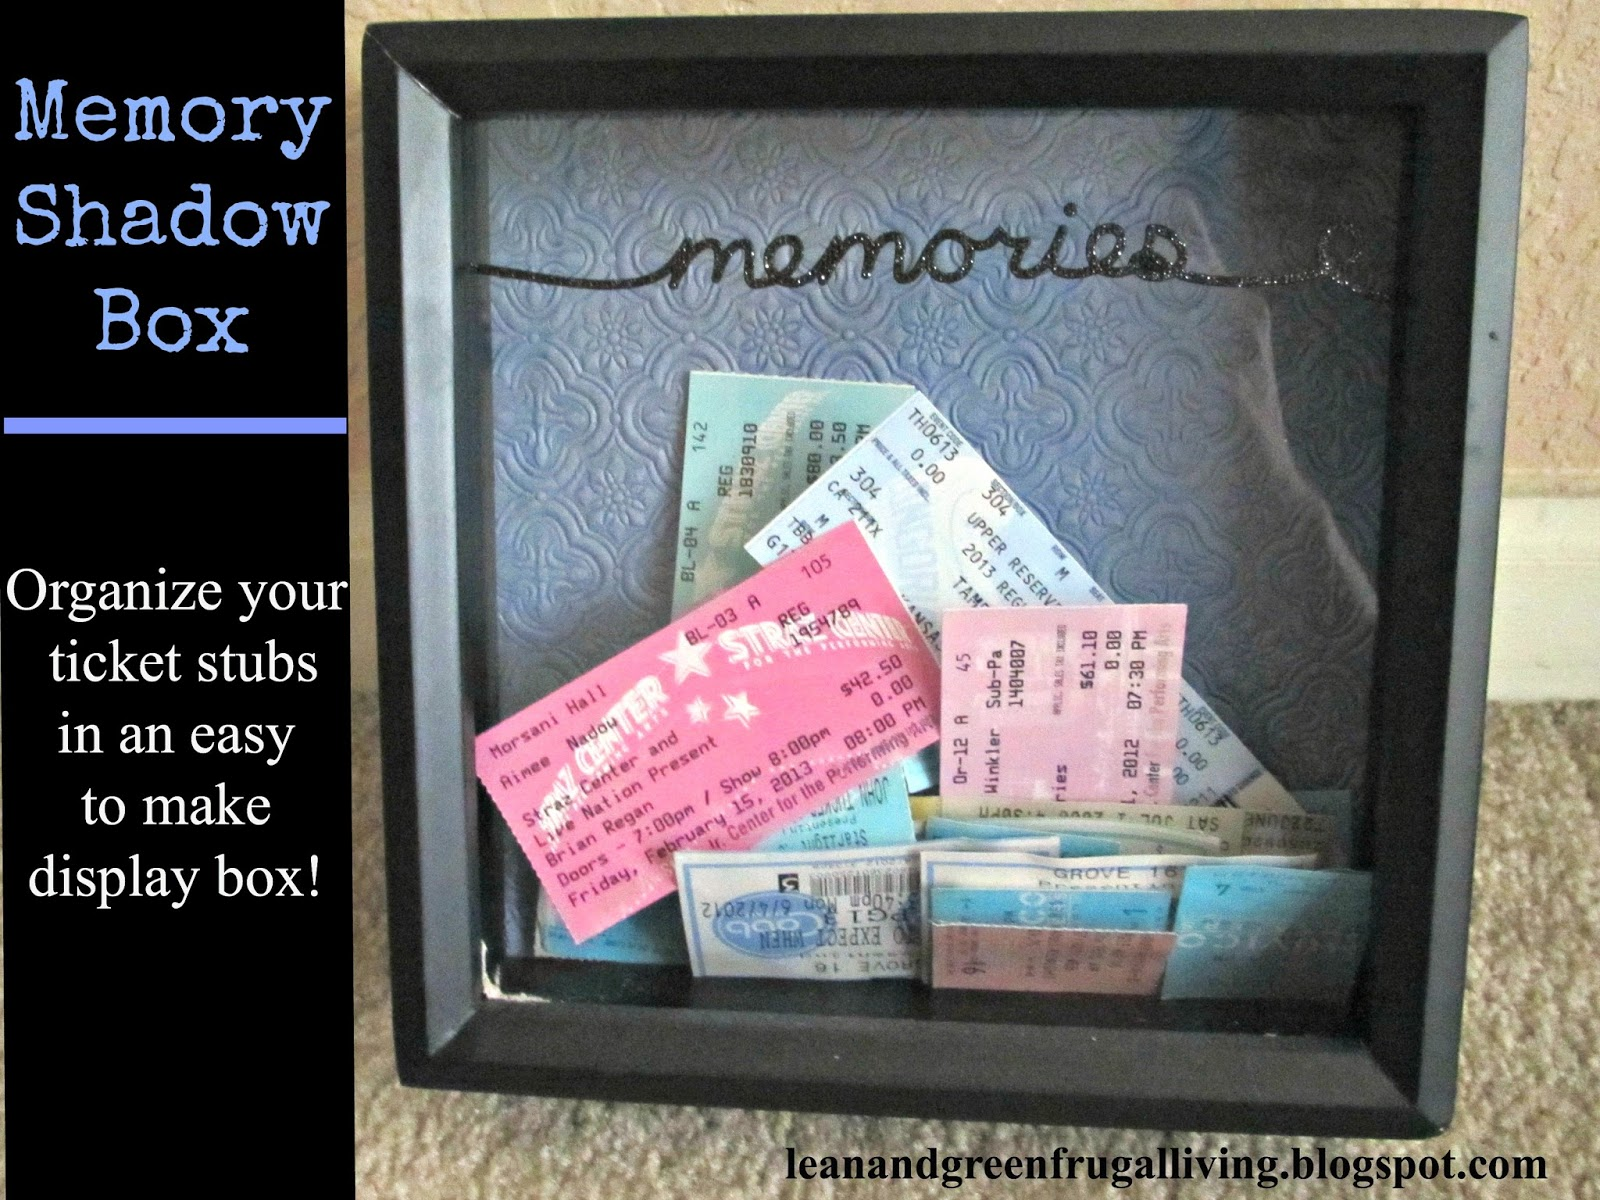 Organize Your Ticket Stubs in a Memory Shadow Box!